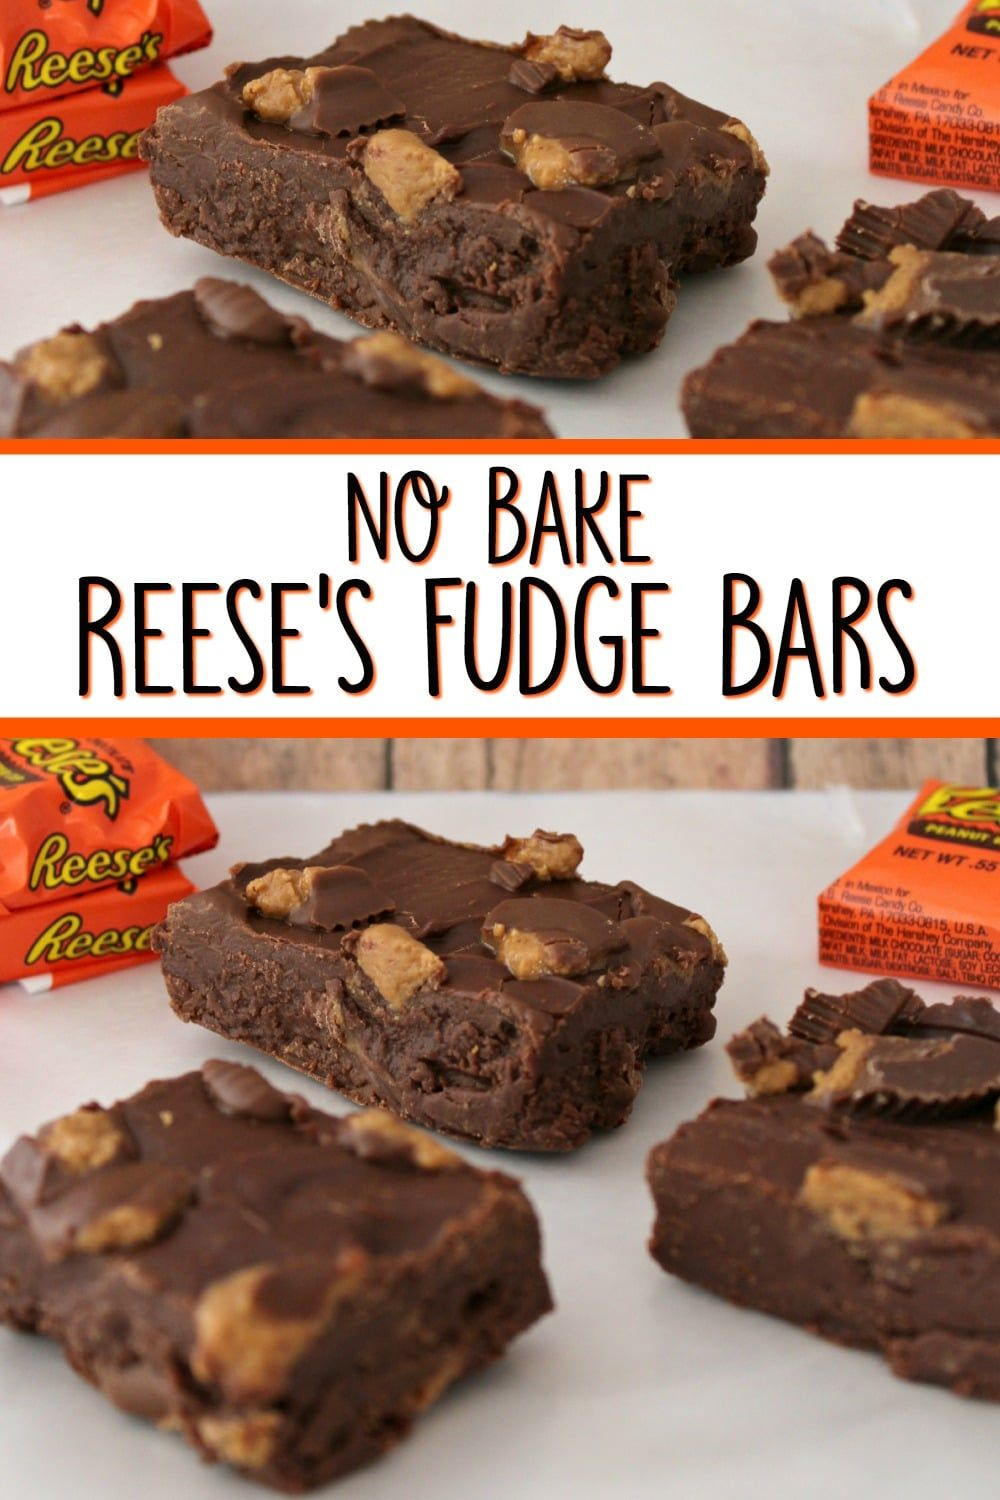 No Bake Reese Fudge Bars That Will WOW Your Friends These No-Bake Reese Fudge Bars are easy to make and oh-so-delicious! Your friends will all clamor for the recipe! They make great gifts too! Put them in a cute tin and gift them to friends and family!